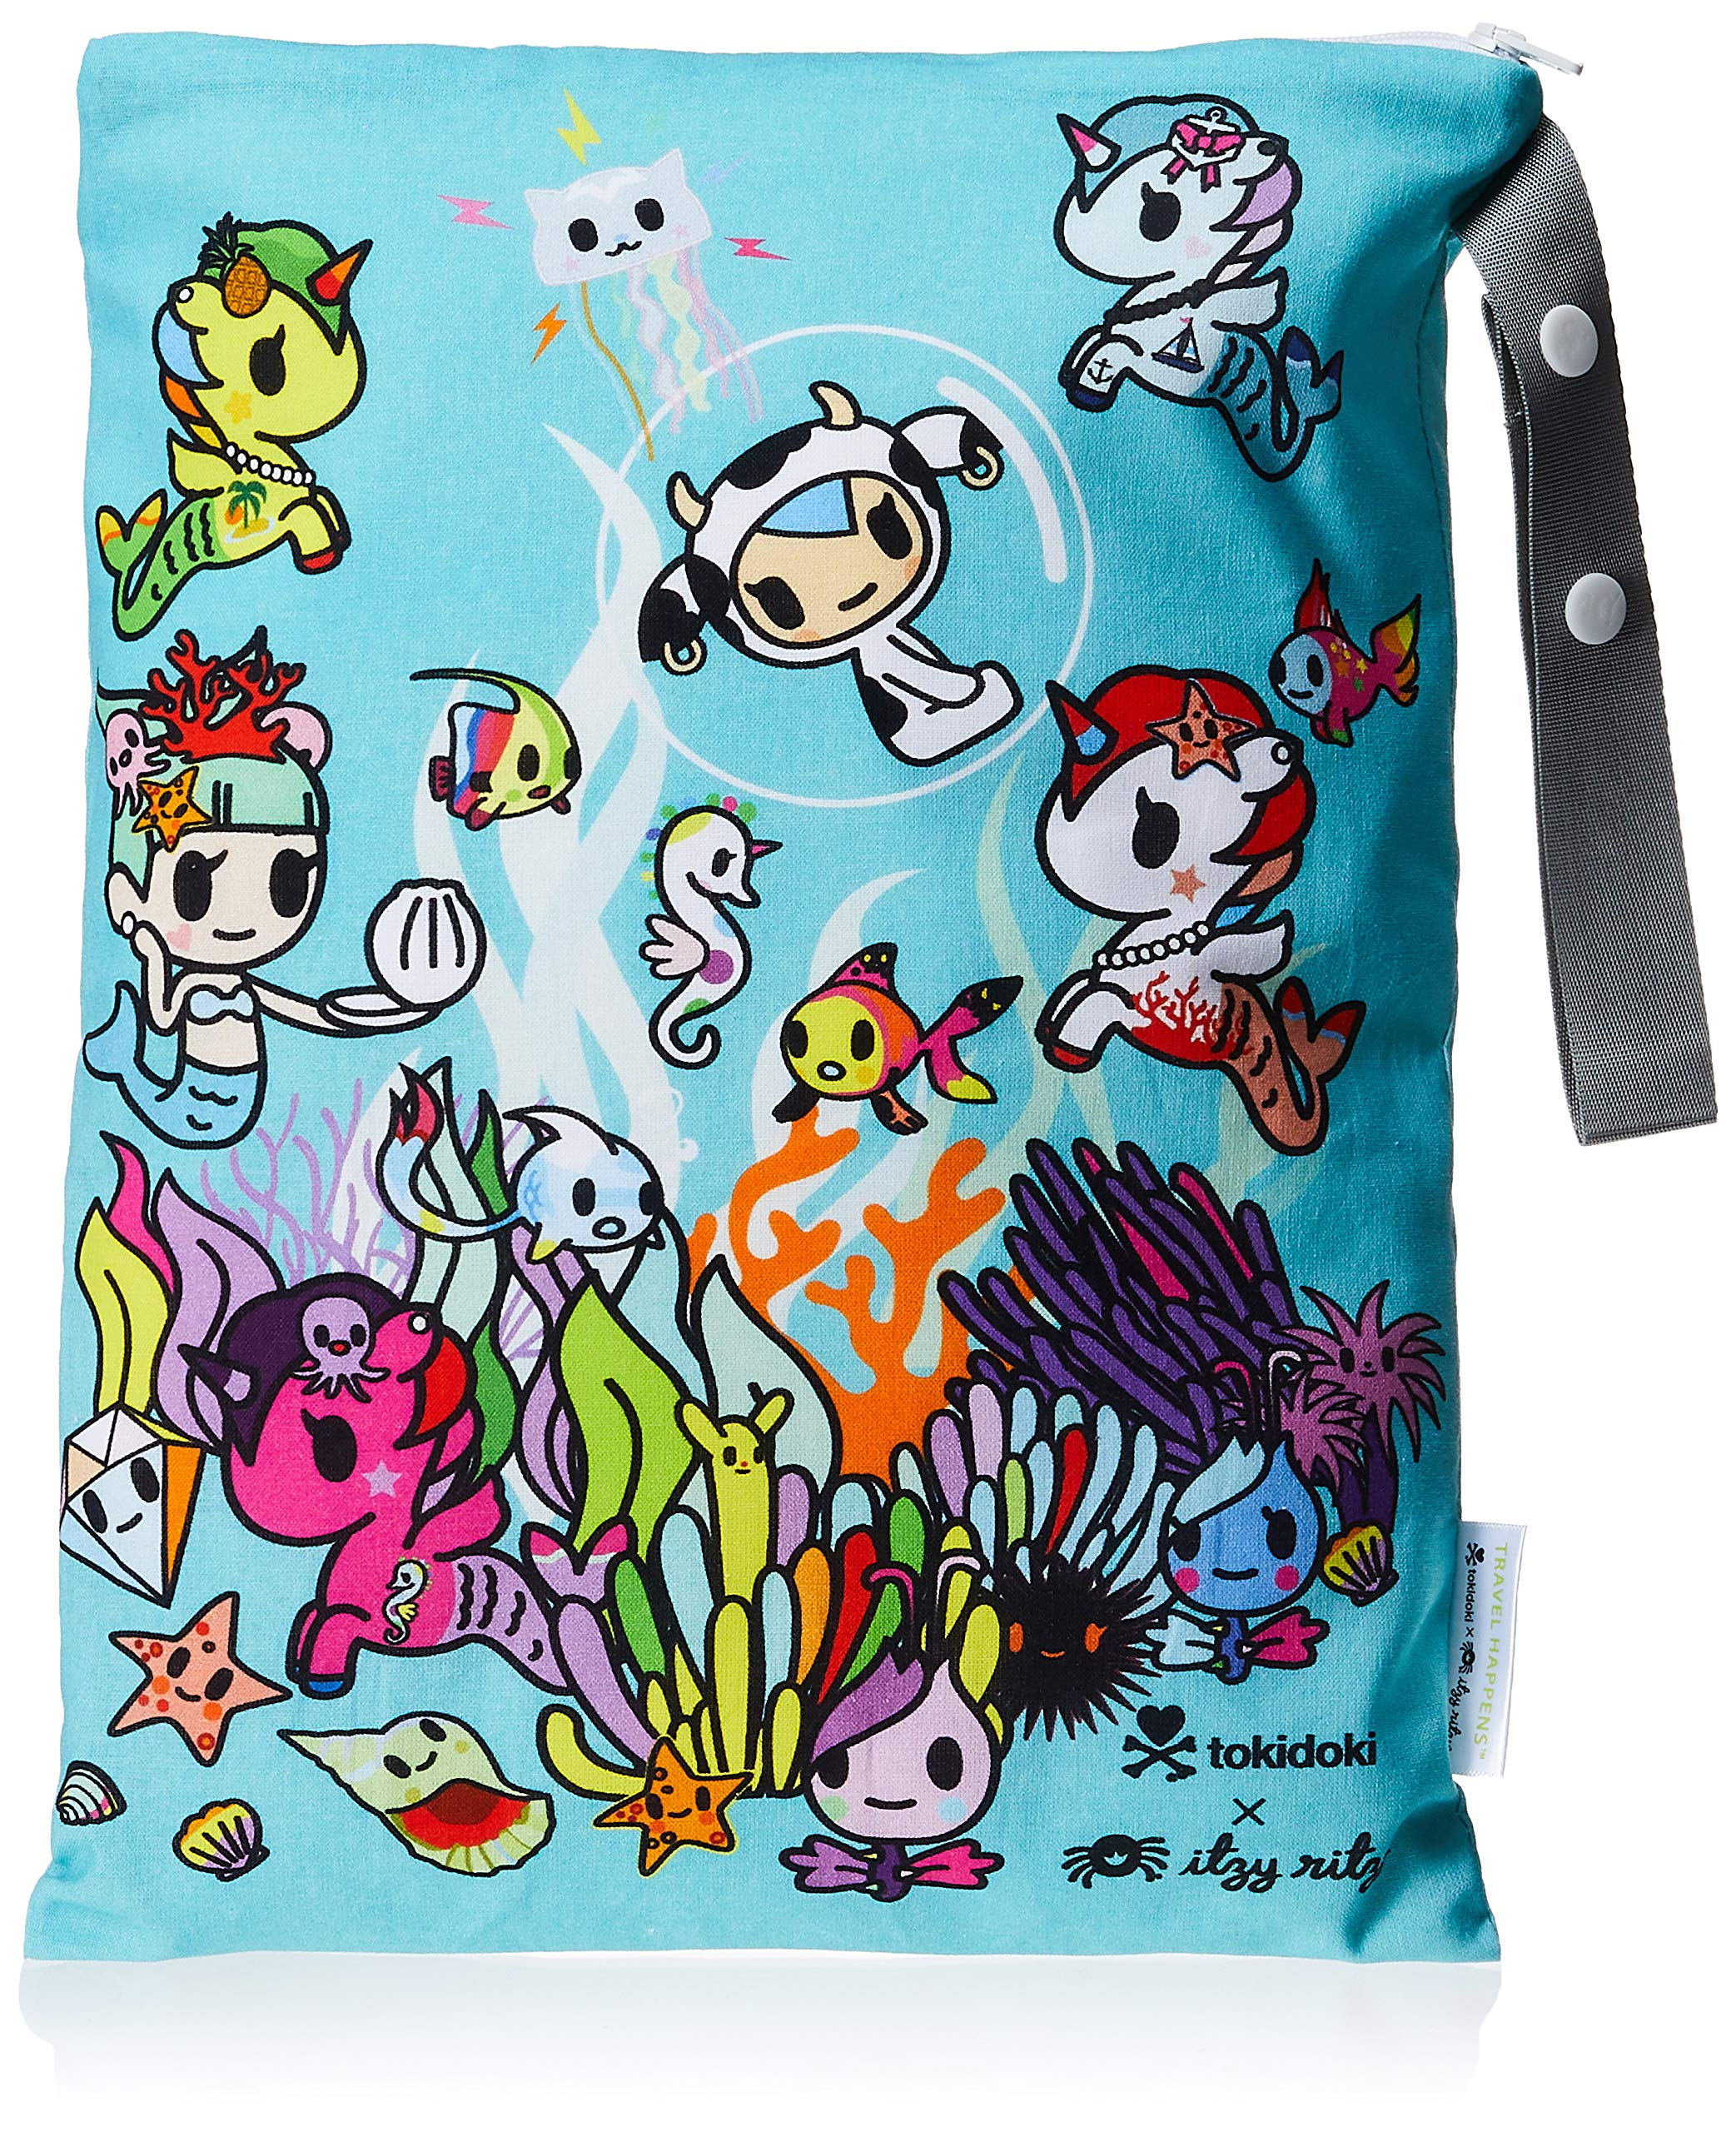 """Itzy Ritzy Sealed Wet Bag With Adjustable Handle – Washable, Reusable Wet Bag with Water Resistant Lining Ideal for Swimwear, Diapers, Gym Clothes, Toiletries; Measures 11"""" x 14"""", Underwater Adventure"""